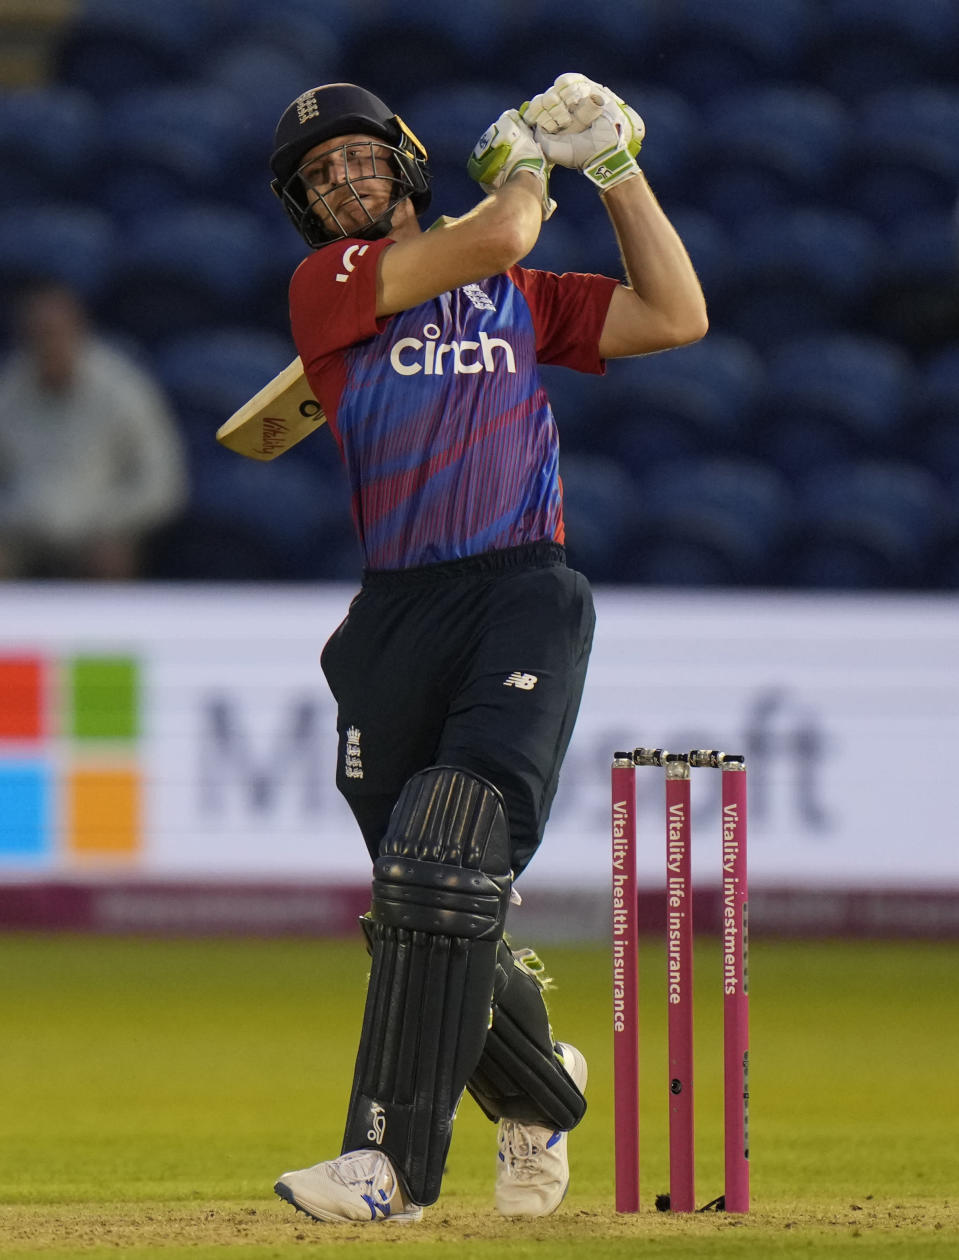 England's Jos Buttler hits the winning run during the T20 international cricket match between England and Sri Lanka at Cardiff, Wales, Wednesday, June 23, 2021. (AP Photo/Alastair Grant)